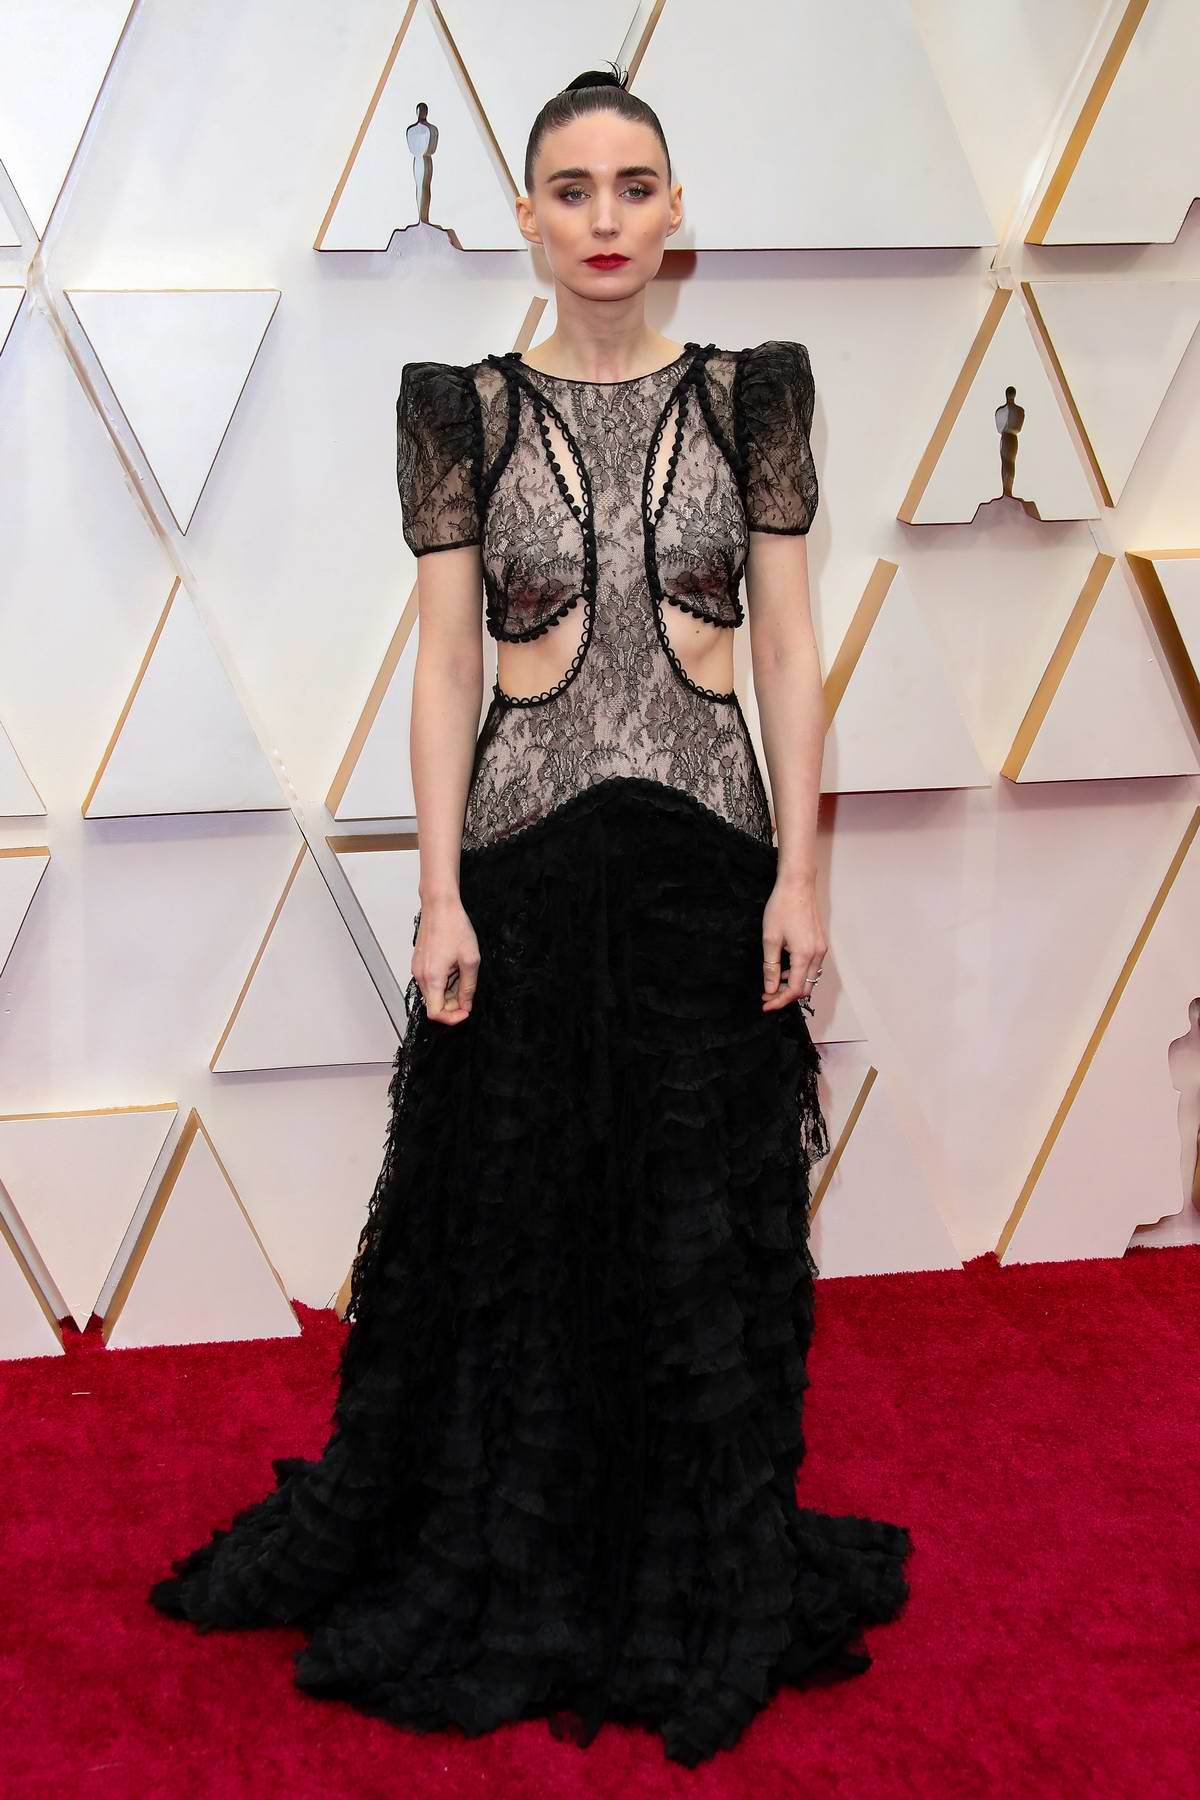 Rooney Mara attends the 92nd Annual Academy Awards at Dolby Theatre in Los Angeles